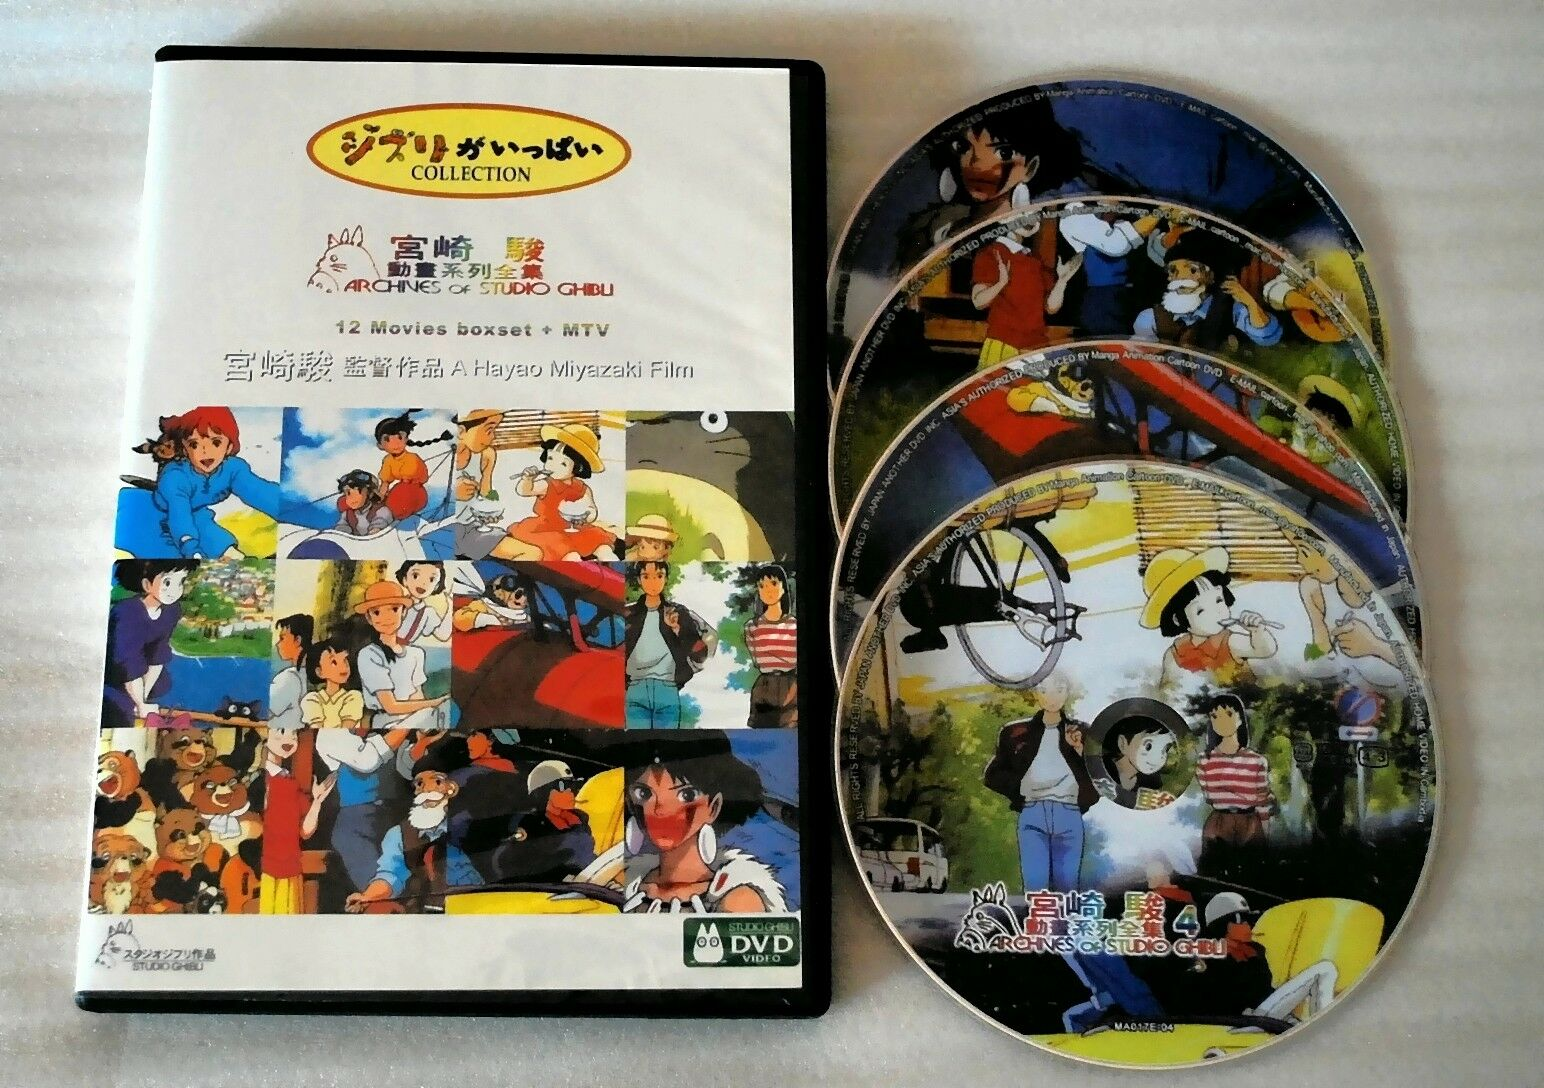 Studio Ghibli DVD Collection Anime 12 Movies English subtitles set New USA